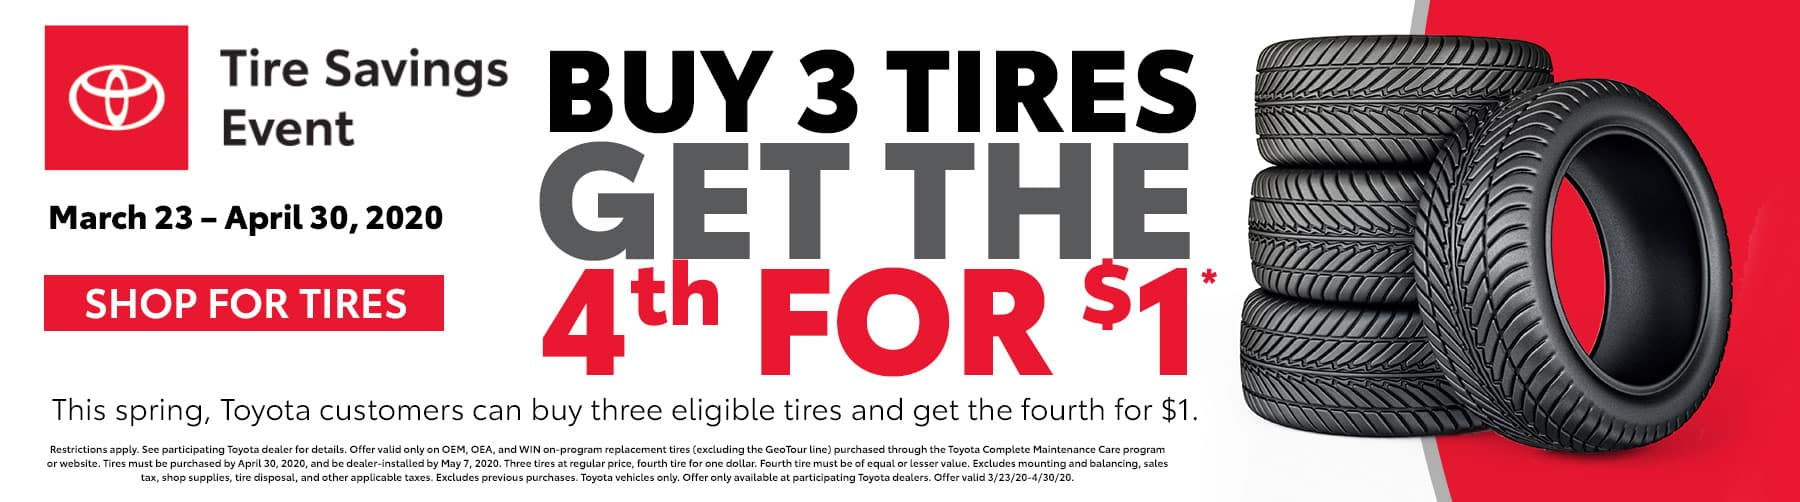 Tire Savings Event at Tuscaloosa Toyota in Tuscaloosa, AL